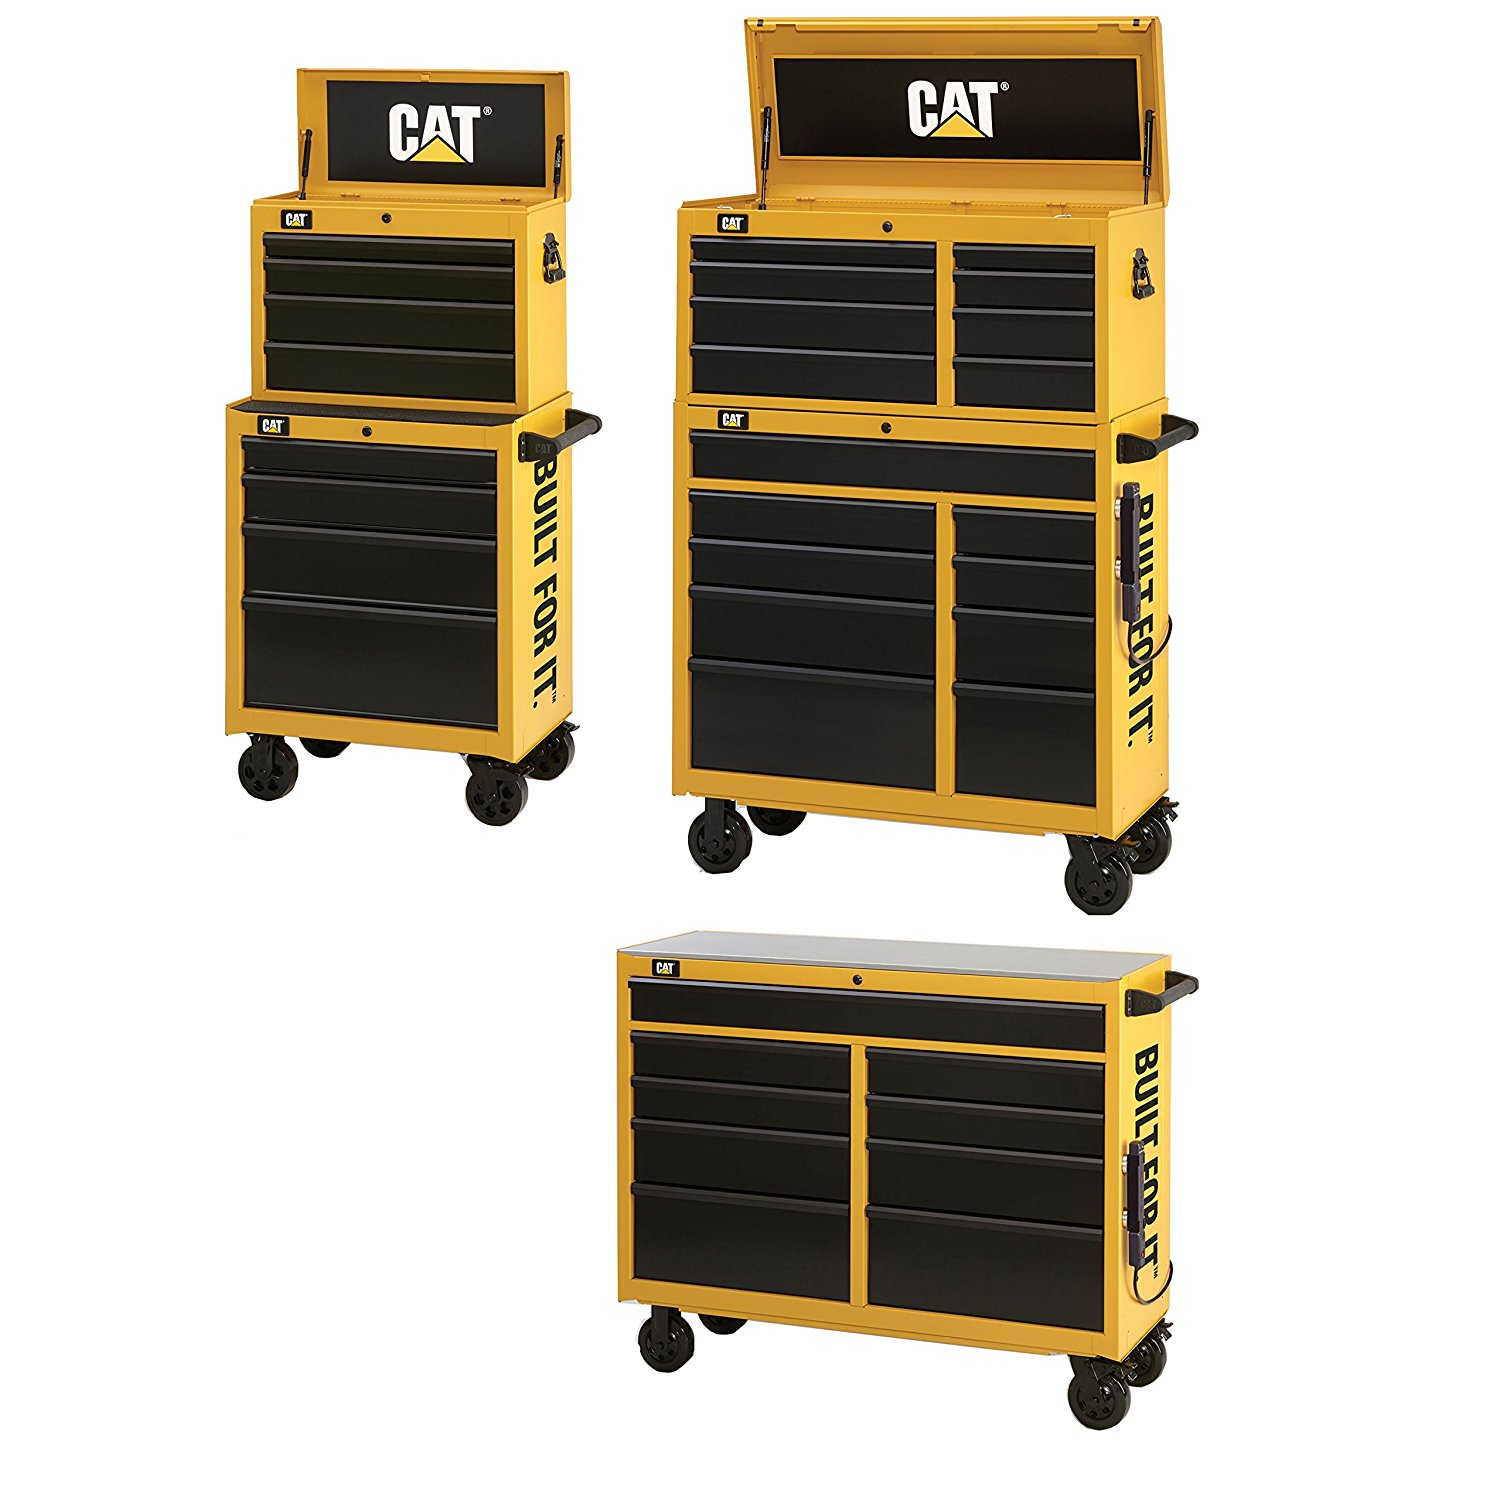 """Caterpillar CAT-IND4108 41"""" Chest/Cabinet, WS with CAT-IND2604 26"""" Chest/Cabinet"""